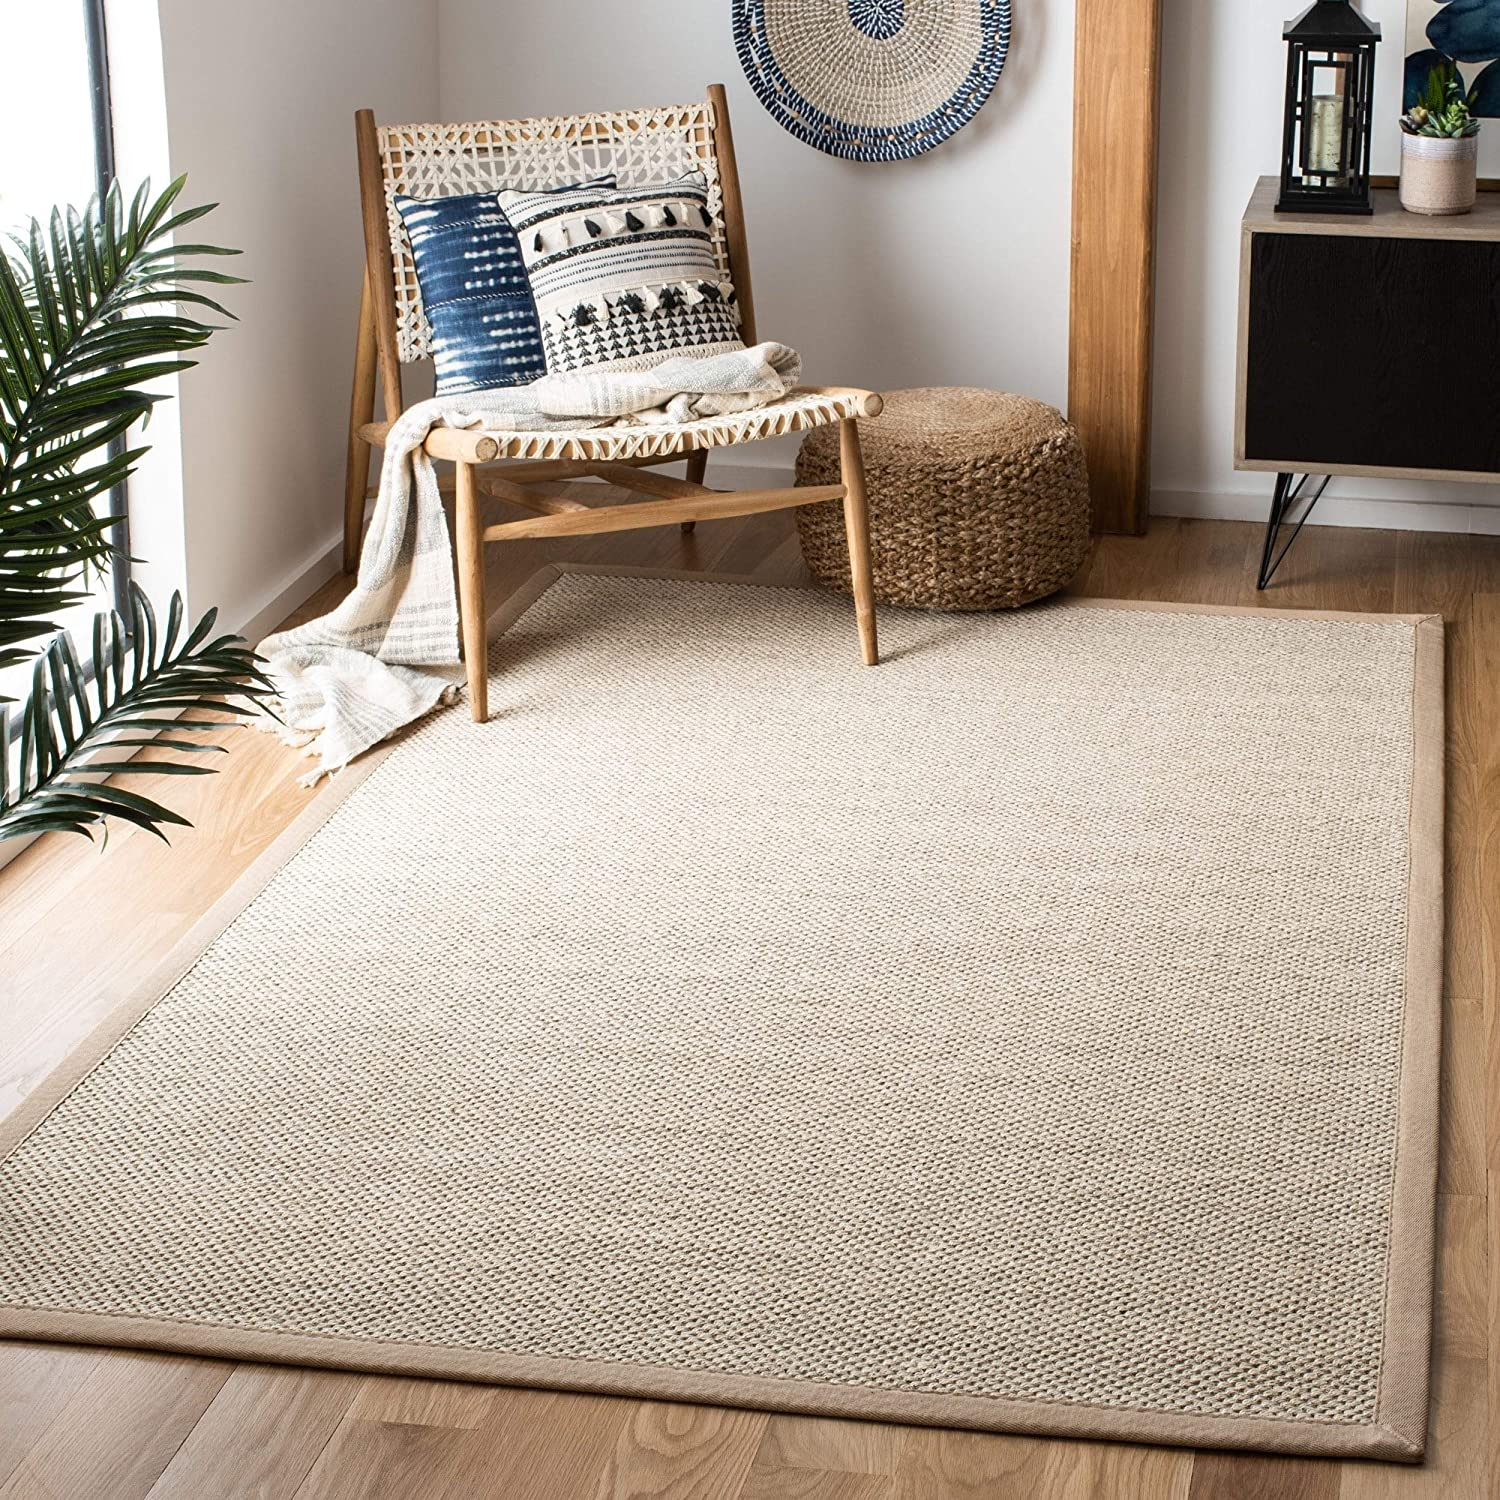 Amazon Com Safavieh Natural Fiber Collection Nf143b Border Sisal Area Rug 8 X 10 Marble Linen Furniture Decor